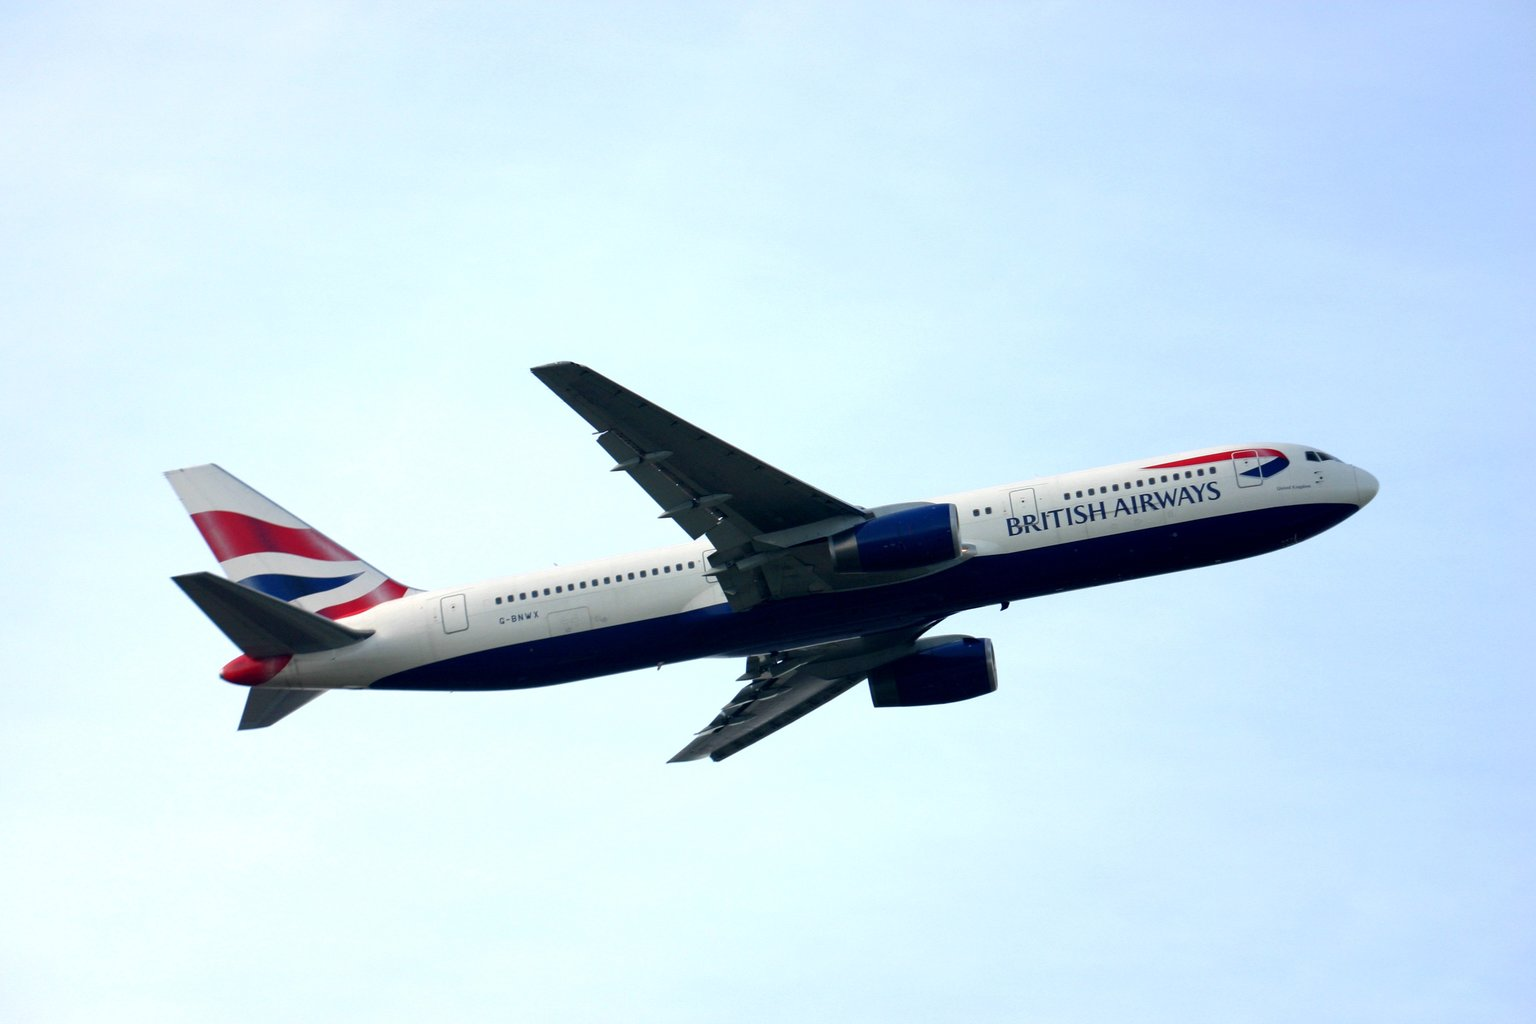 British Airways sets two Guinness World Records